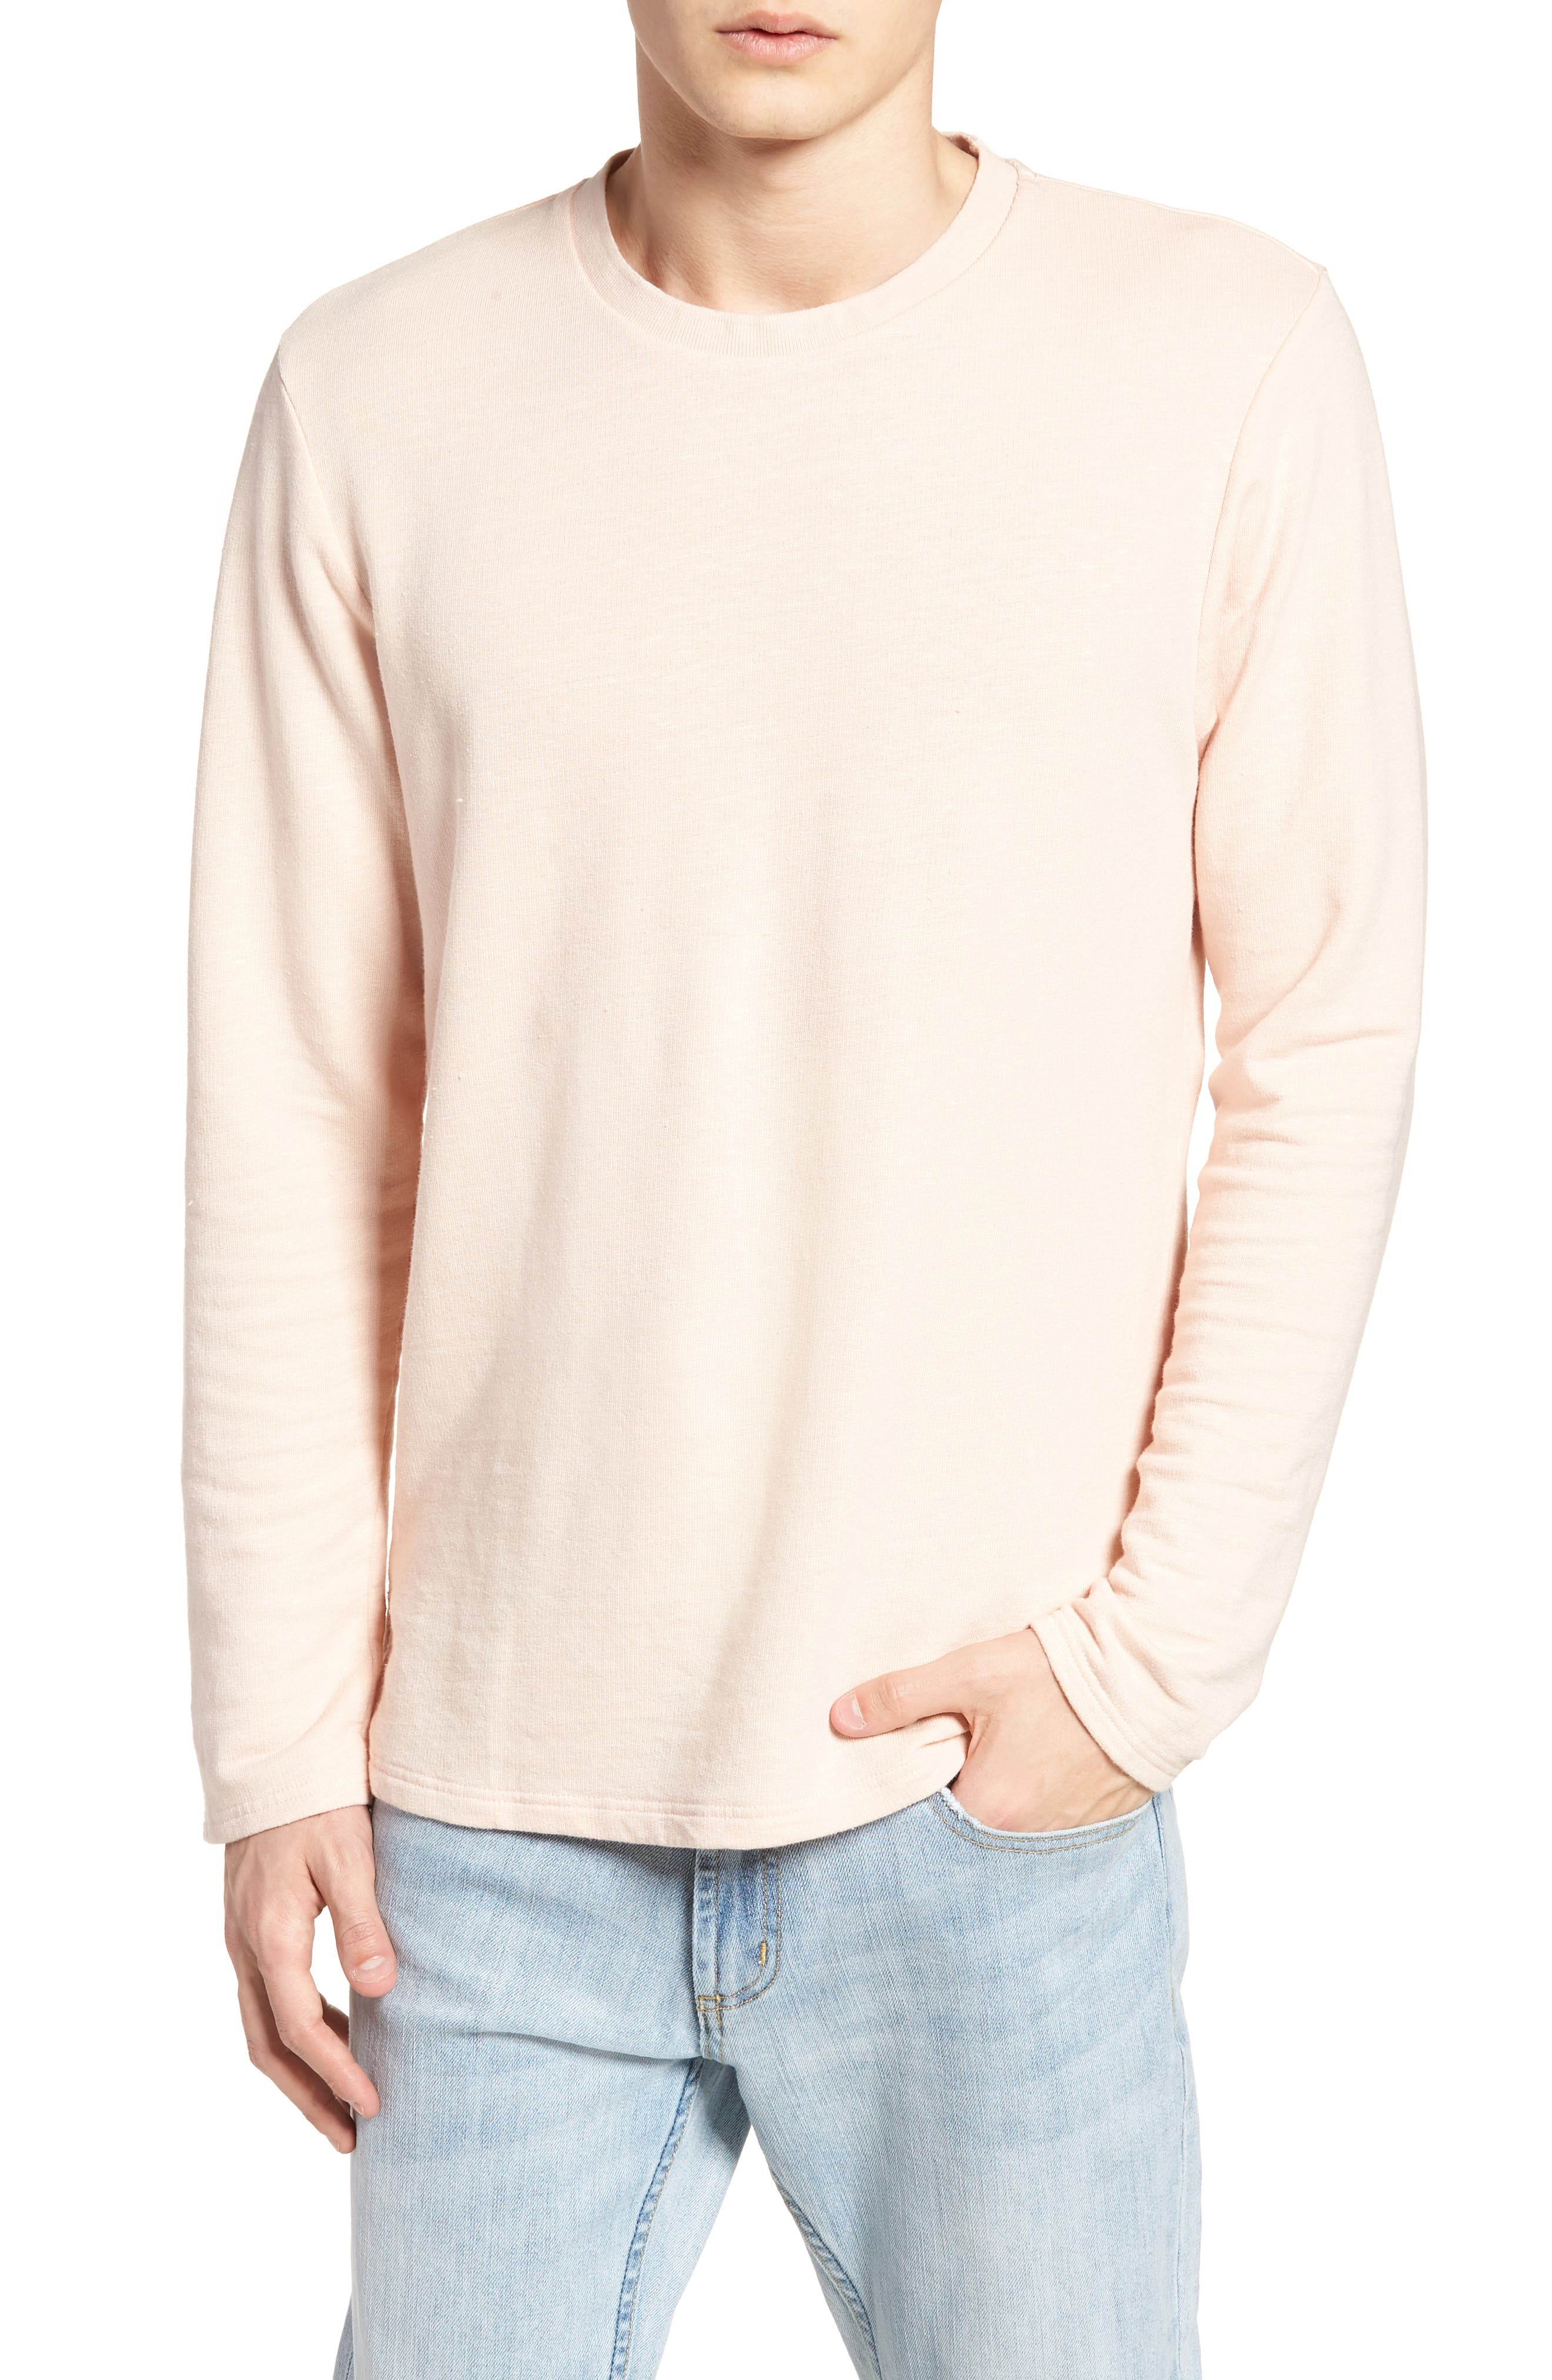 Stripe Crewneck Sweater,                             Main thumbnail 1, color,                             Pink Ash